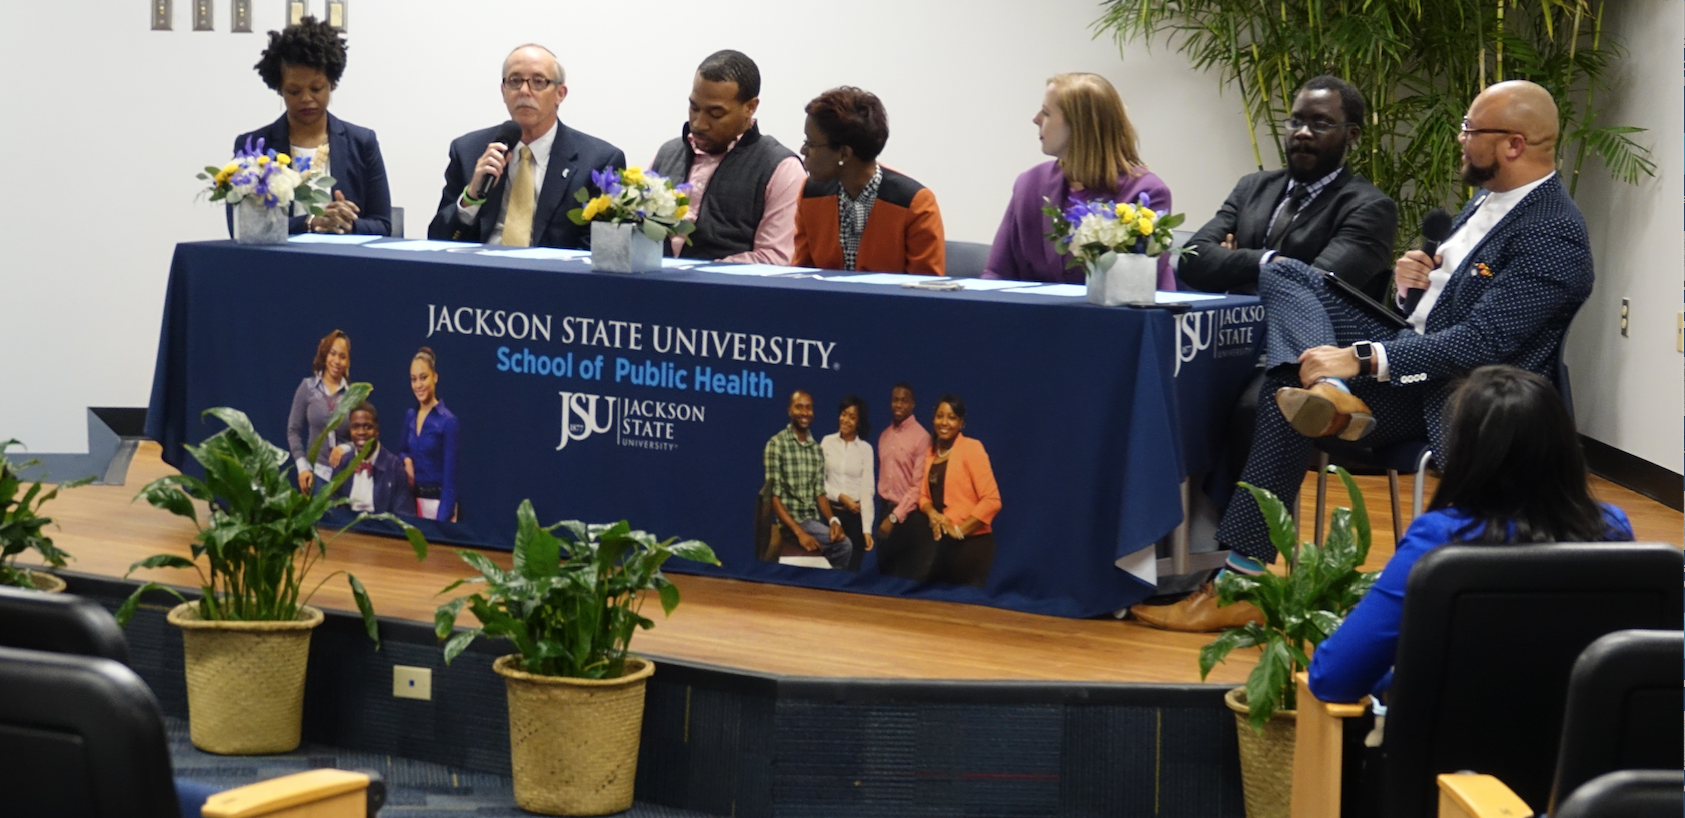 Pubic health professionals assembled inside the Jackson Medical Mall on Wednesday during National Public Health Week to share why their roles are important in saving humanity. Among the JSU alumni panelist included Dr. Nakeitra Burse, left, a grant writer in JSU's School of Public Health (SPH); Jim Craig, director of Health Protection for the Mississippi State Department of Health; and Chris Cox, director of Youth Programming for Teen Health Mississippi. Other participating alums who shared their expertise were D'Angelique Lister, a school health coordinator for Partnership for a Healthy Mississippi; Dr. Amy Radican-Wald, a senior policy analyst for the Center for Mississippi Health Policy; and Dr. Vincent Mendy, an assistant professor in JSU's Department of Epidemiology and Biostatistics. Alum and moderator Christopher Lane, a research compliance officer in JSU's Division of Research and Federal Relations, earned his master's in public health in 2016.